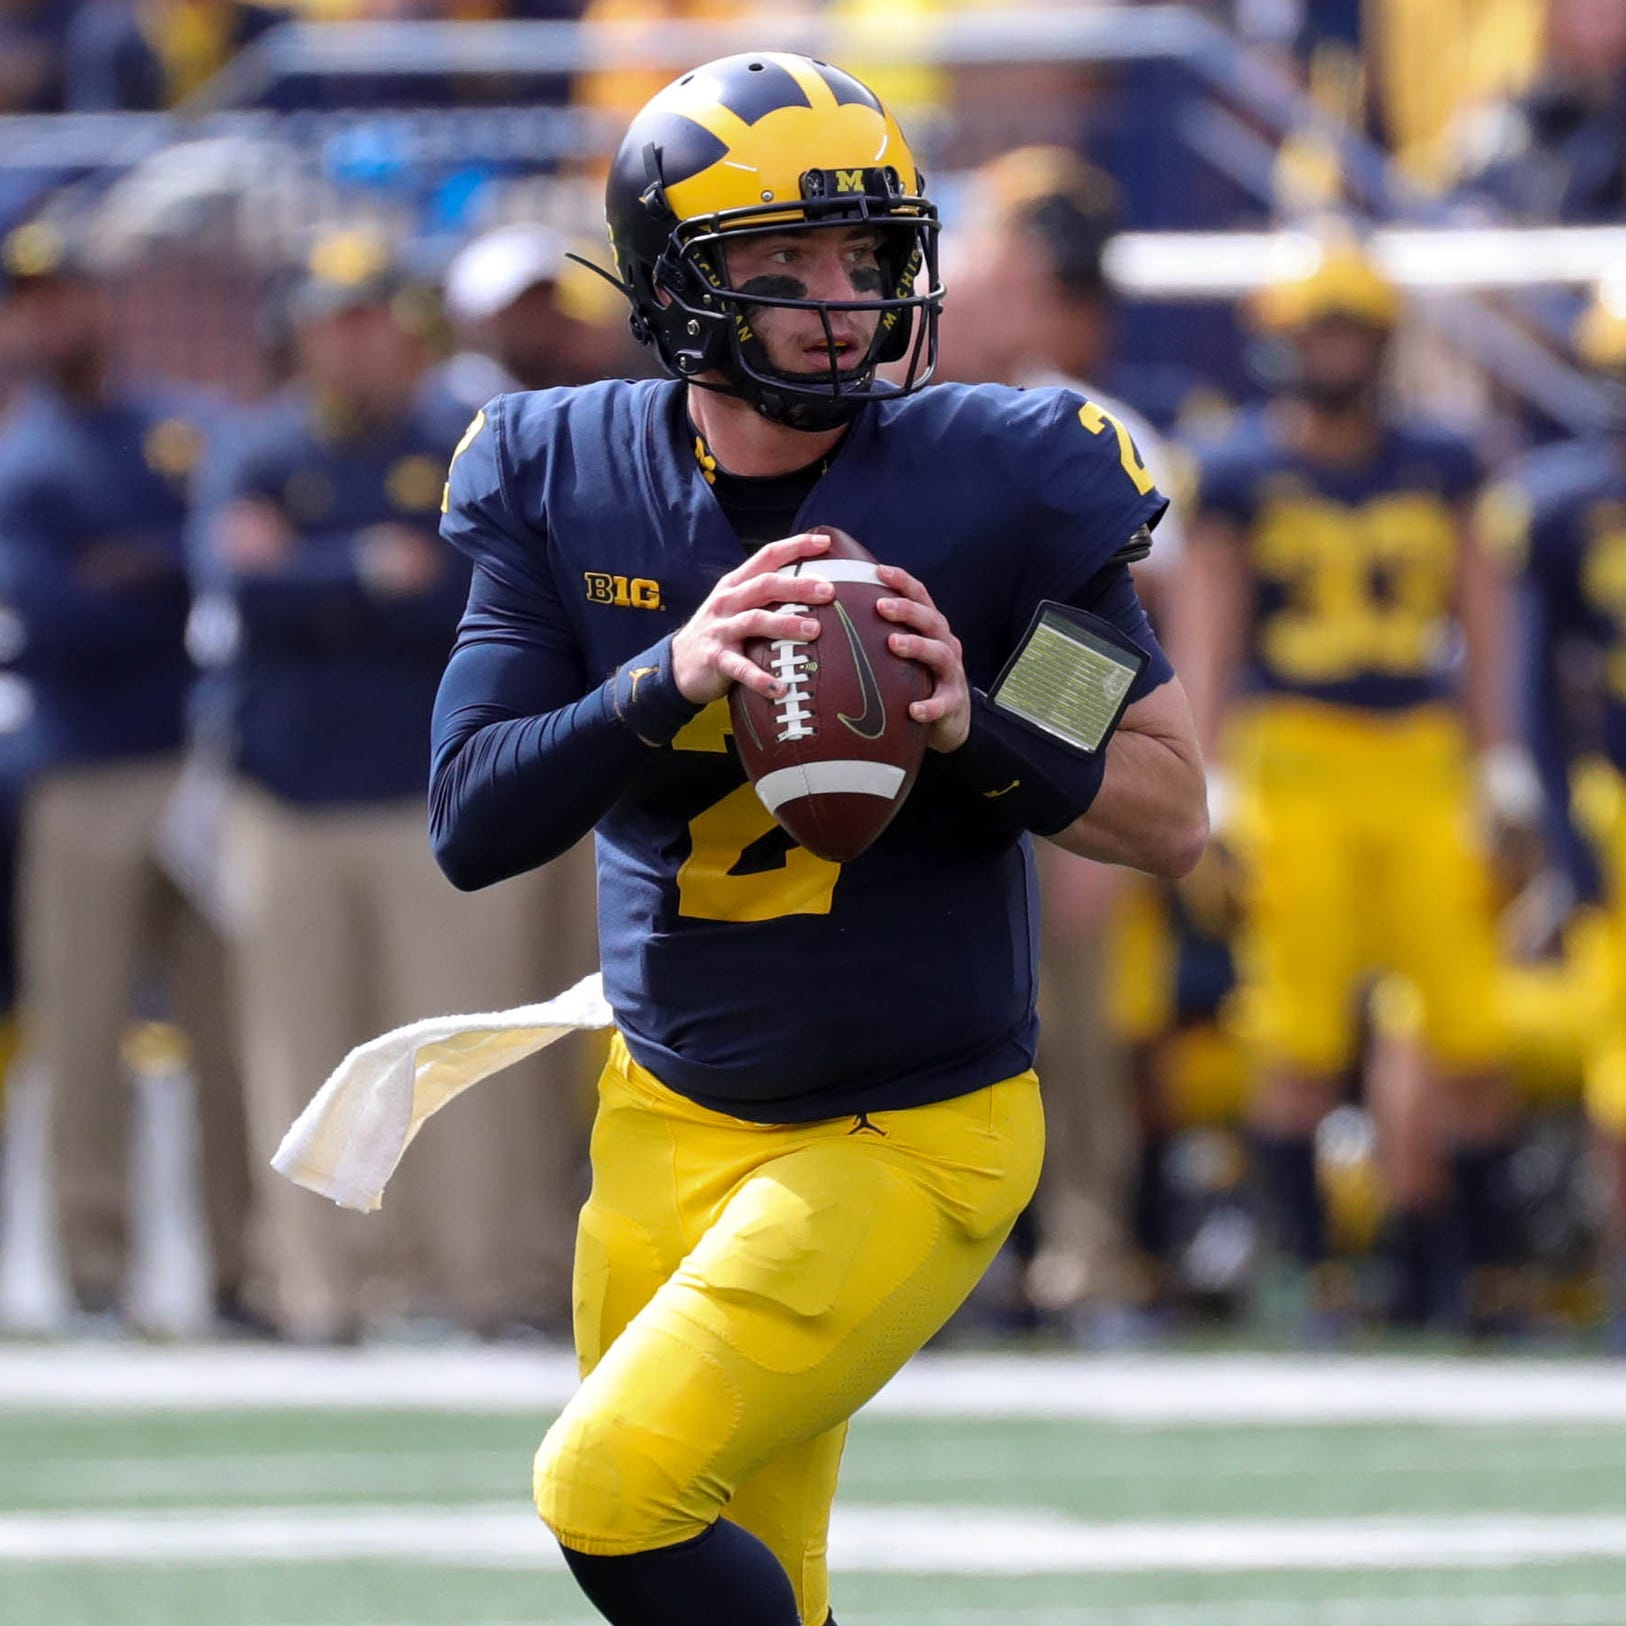 Michigan football 3 questions: How did Shea Patterson look?